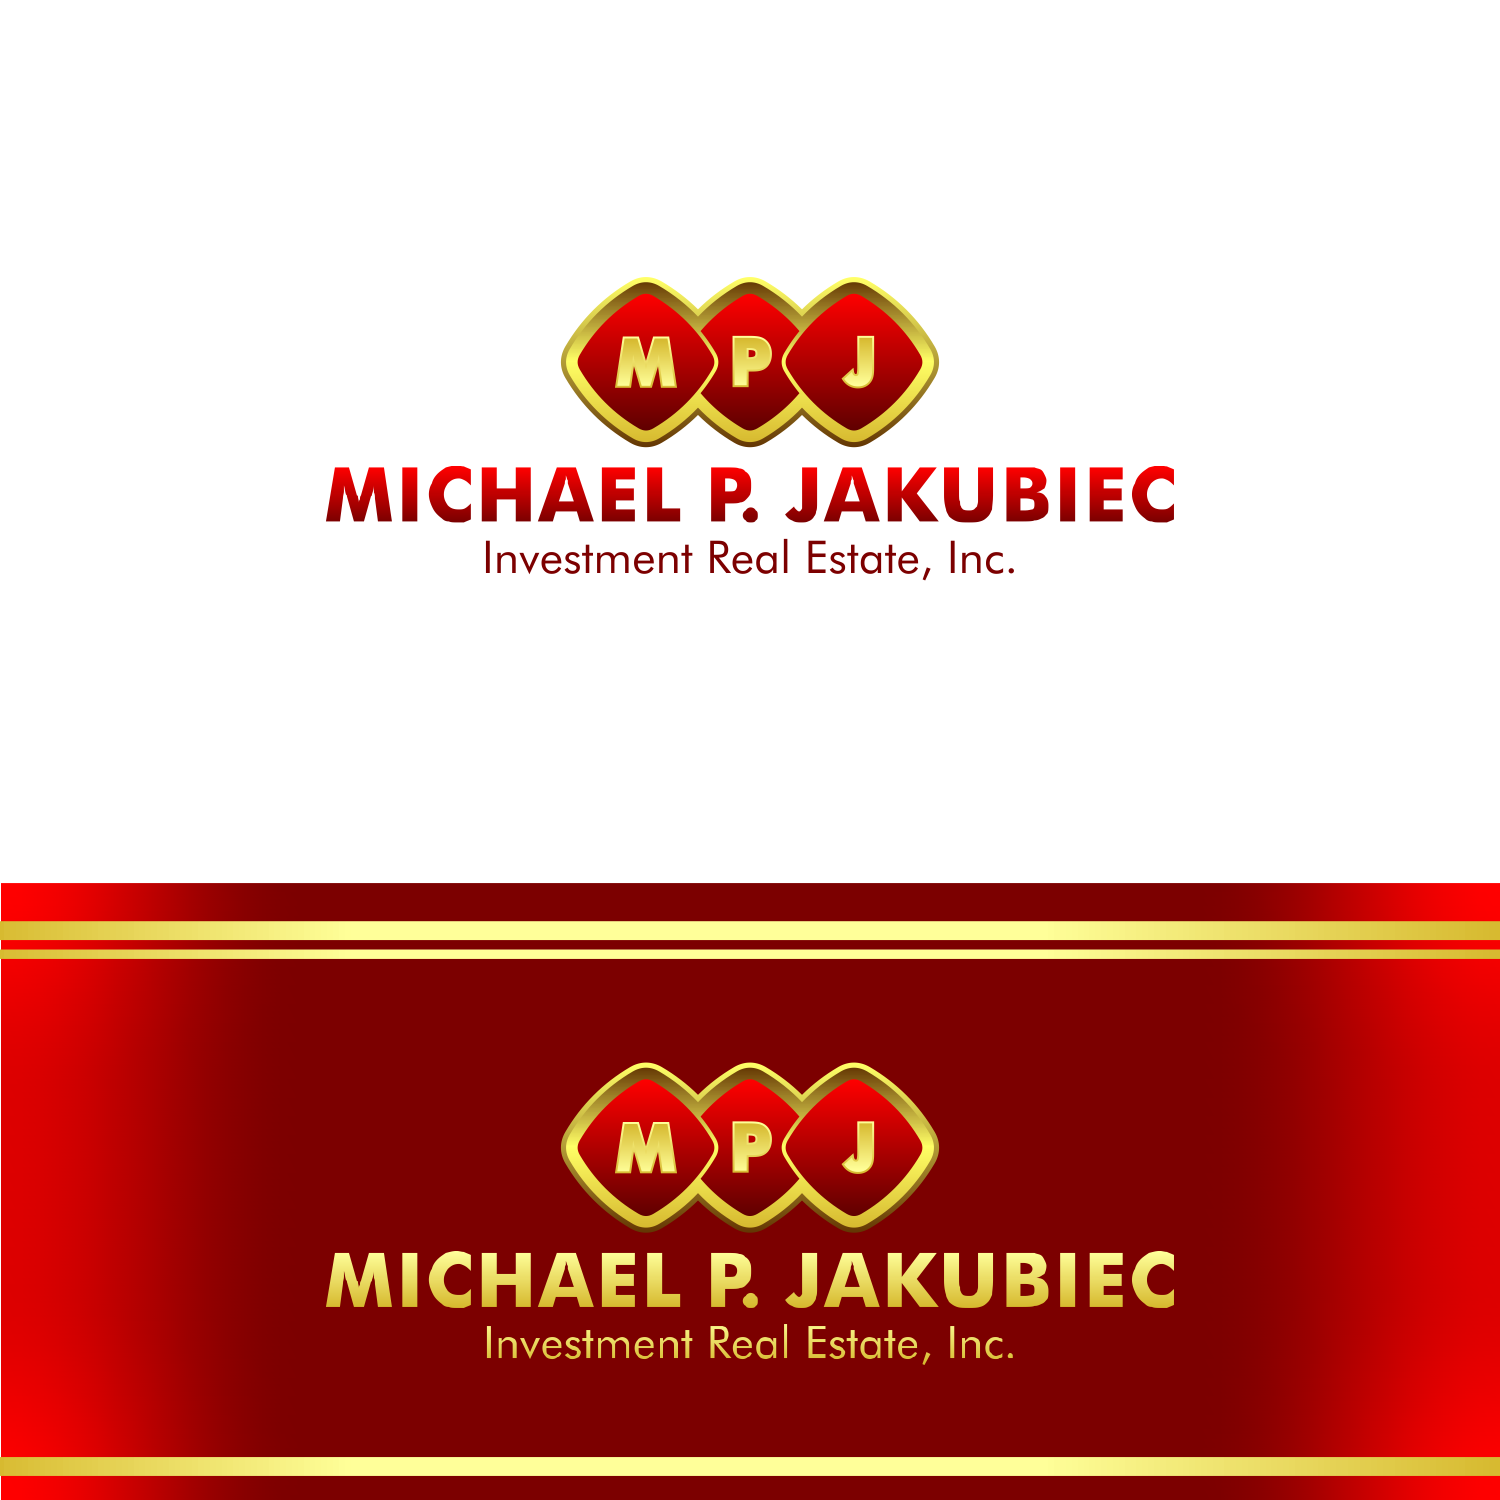 Logo Design by martinz - Entry No. 53 in the Logo Design Contest New Logo Design for Michael P. Jakubiec Investment Real Estate, Inc..